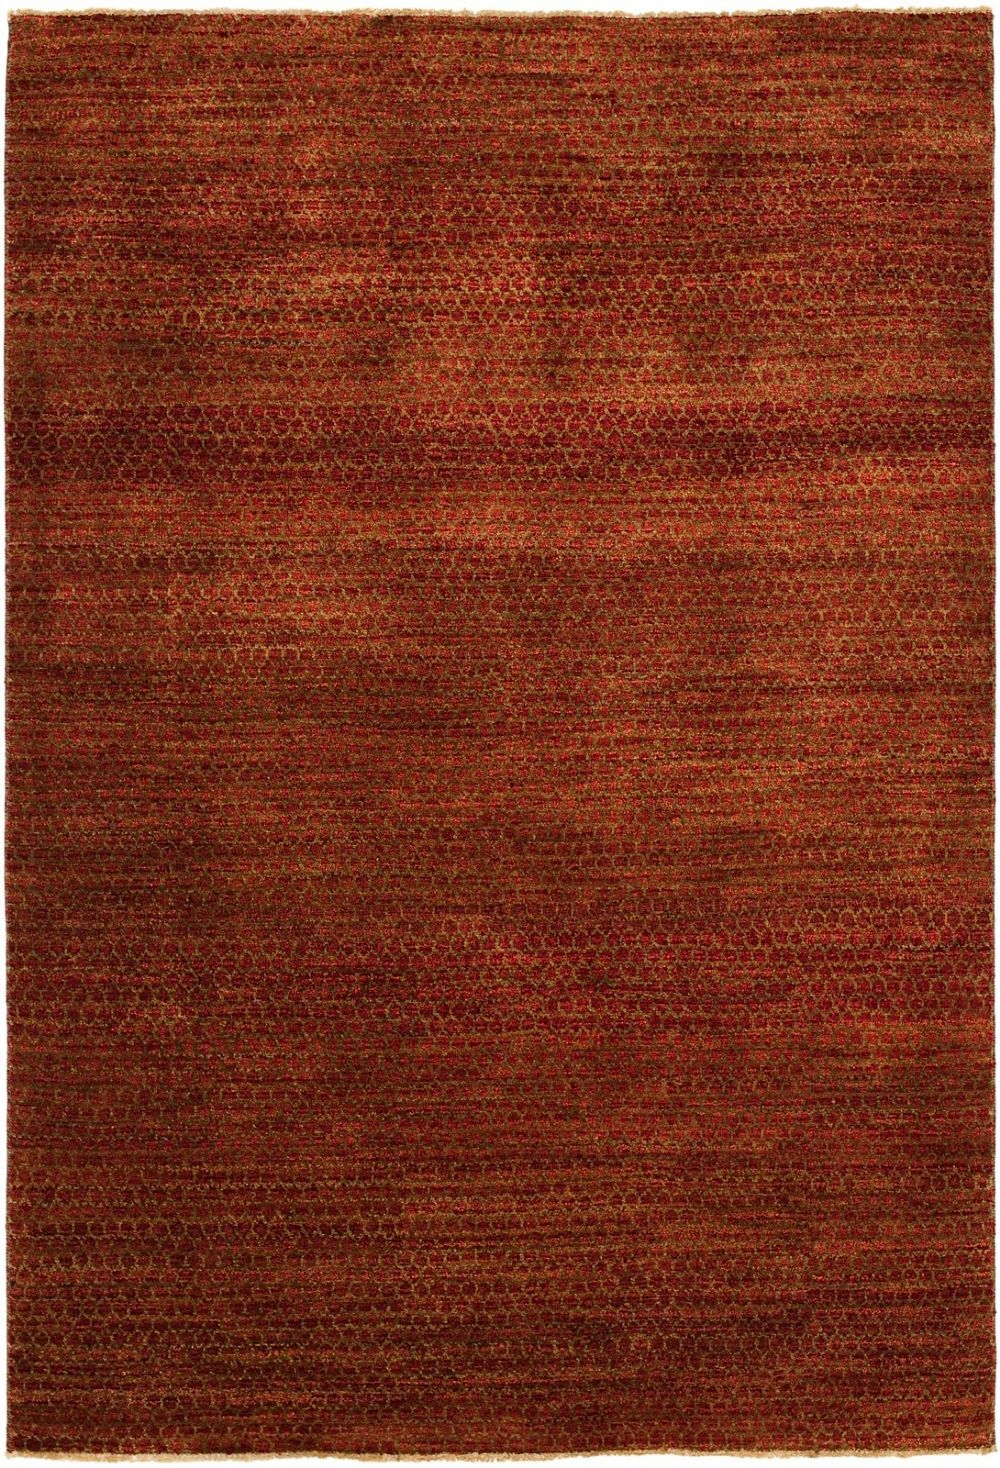 safavieh agra traditional area rug collection